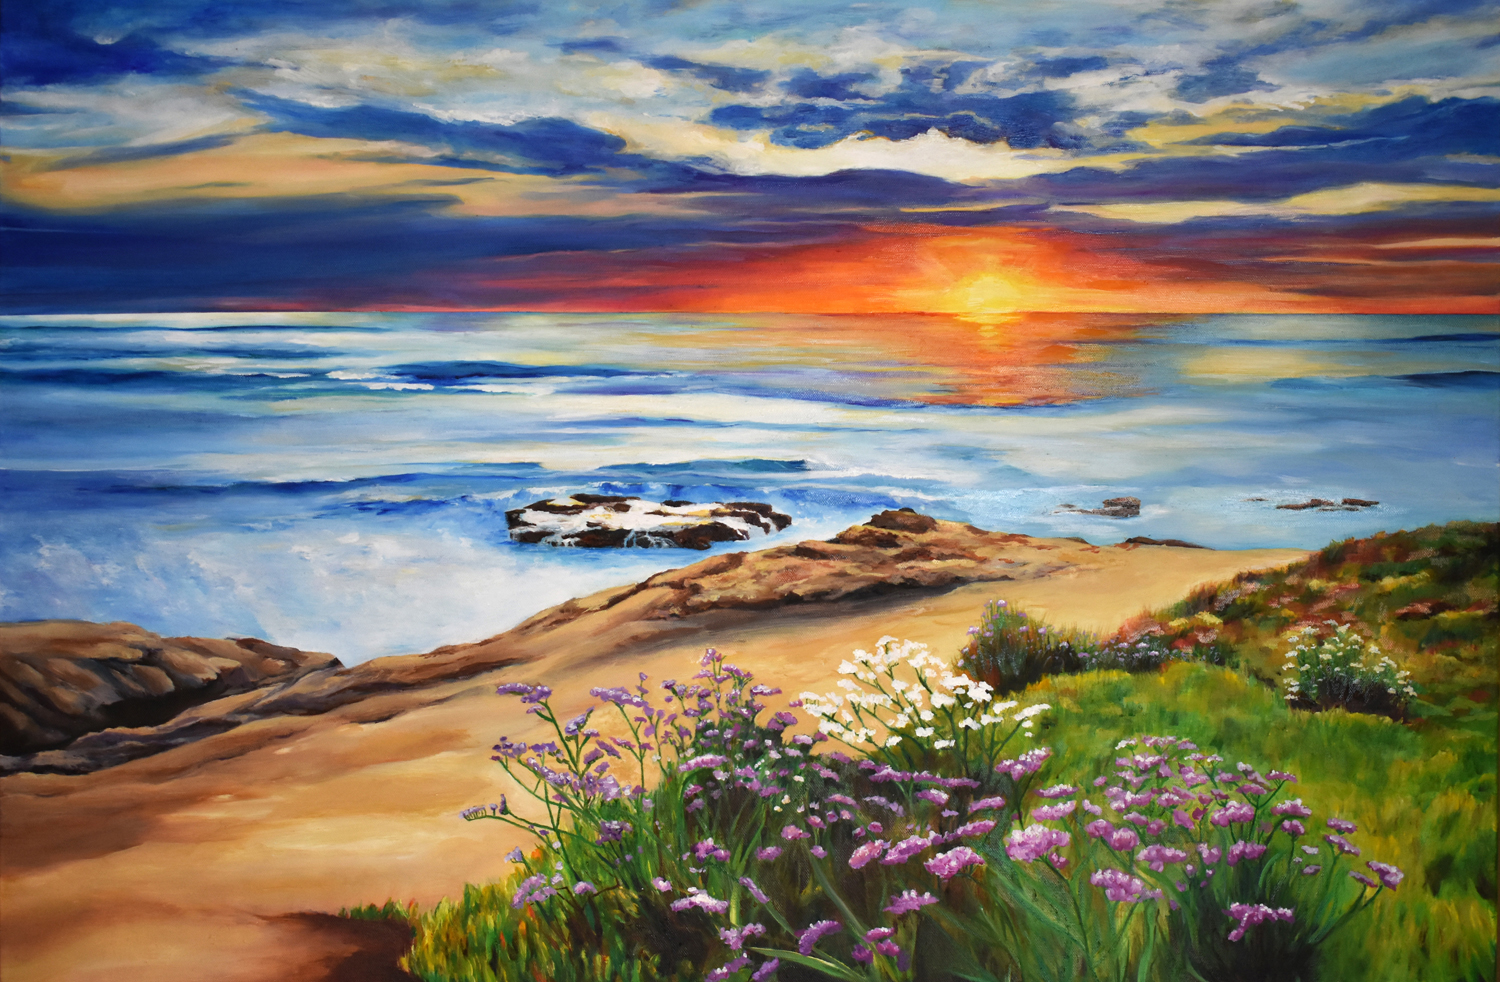 "California Sunset (Commission) • Oil on canvas ∙ 30 x 40"" ∙ 2016"